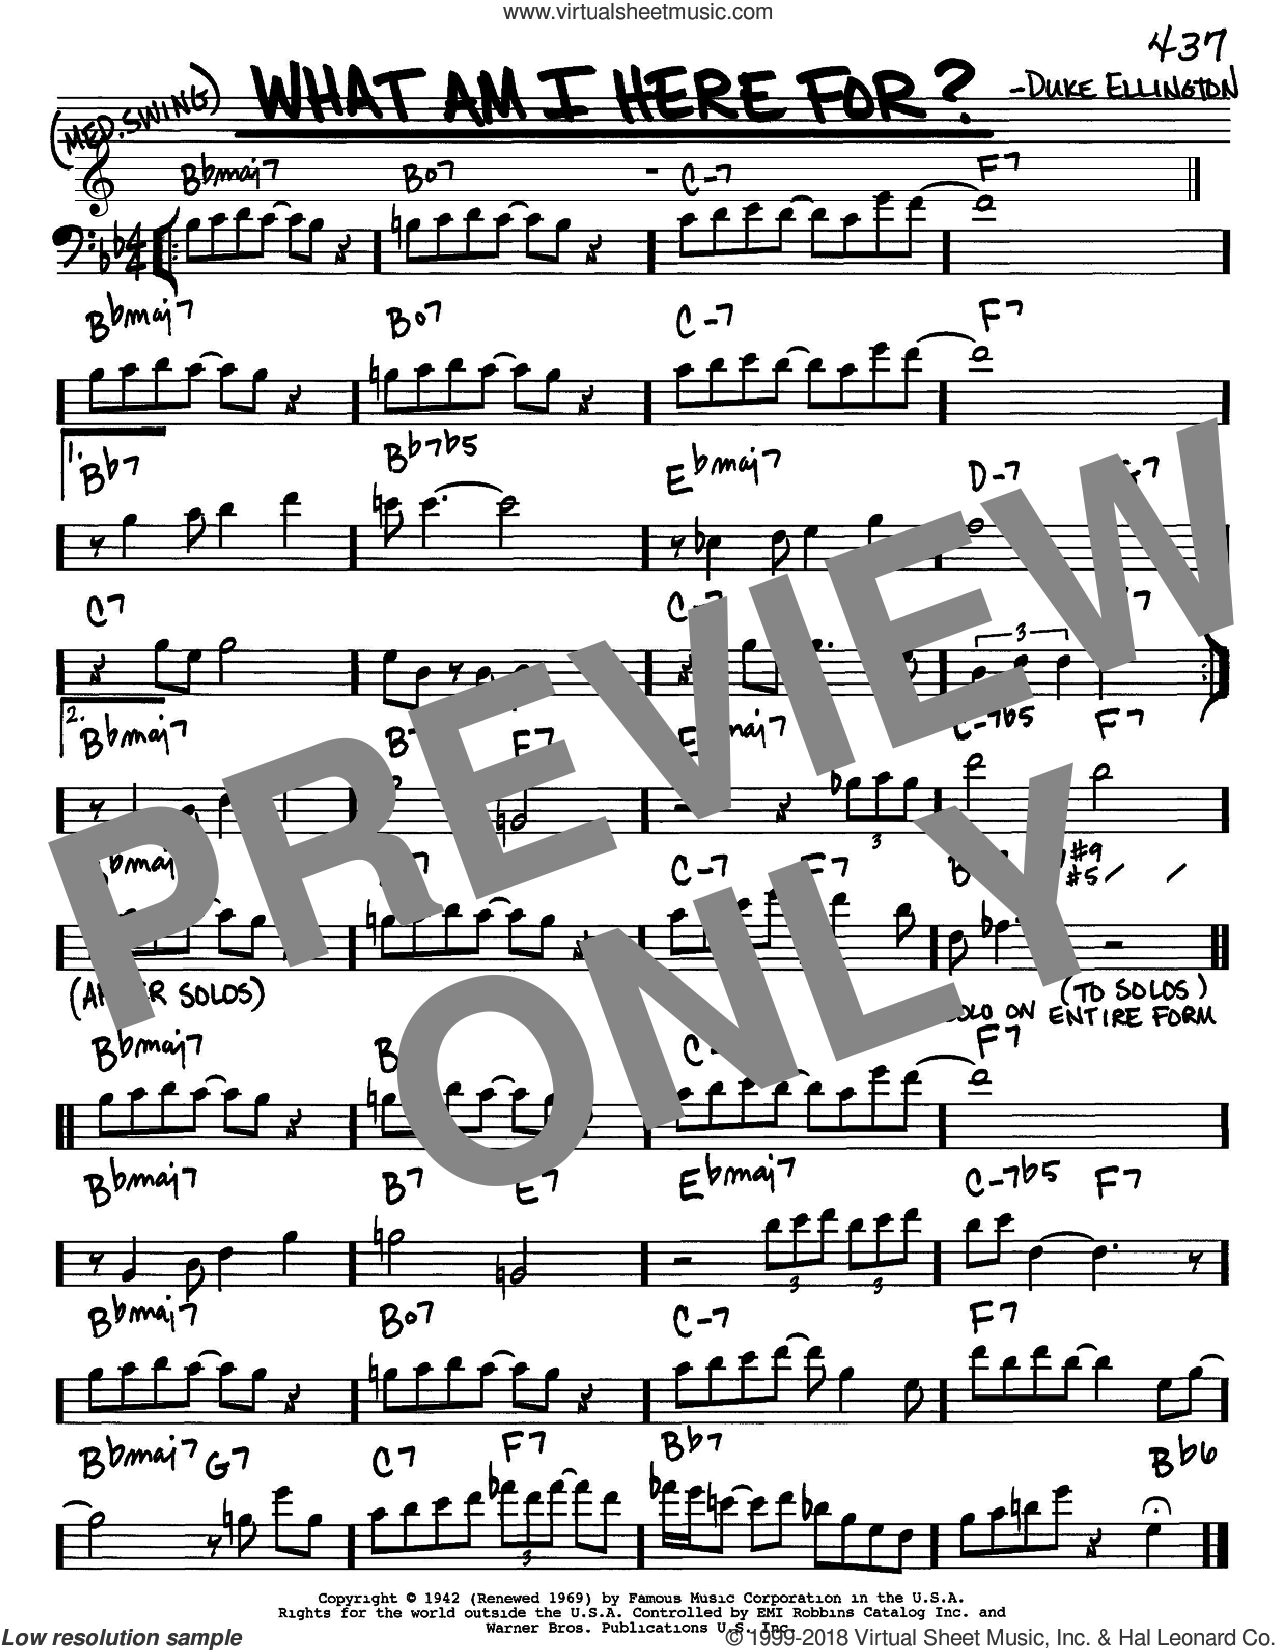 What Am I Here For? sheet music for voice and other instruments (Bass Clef ) by Duke Ellington